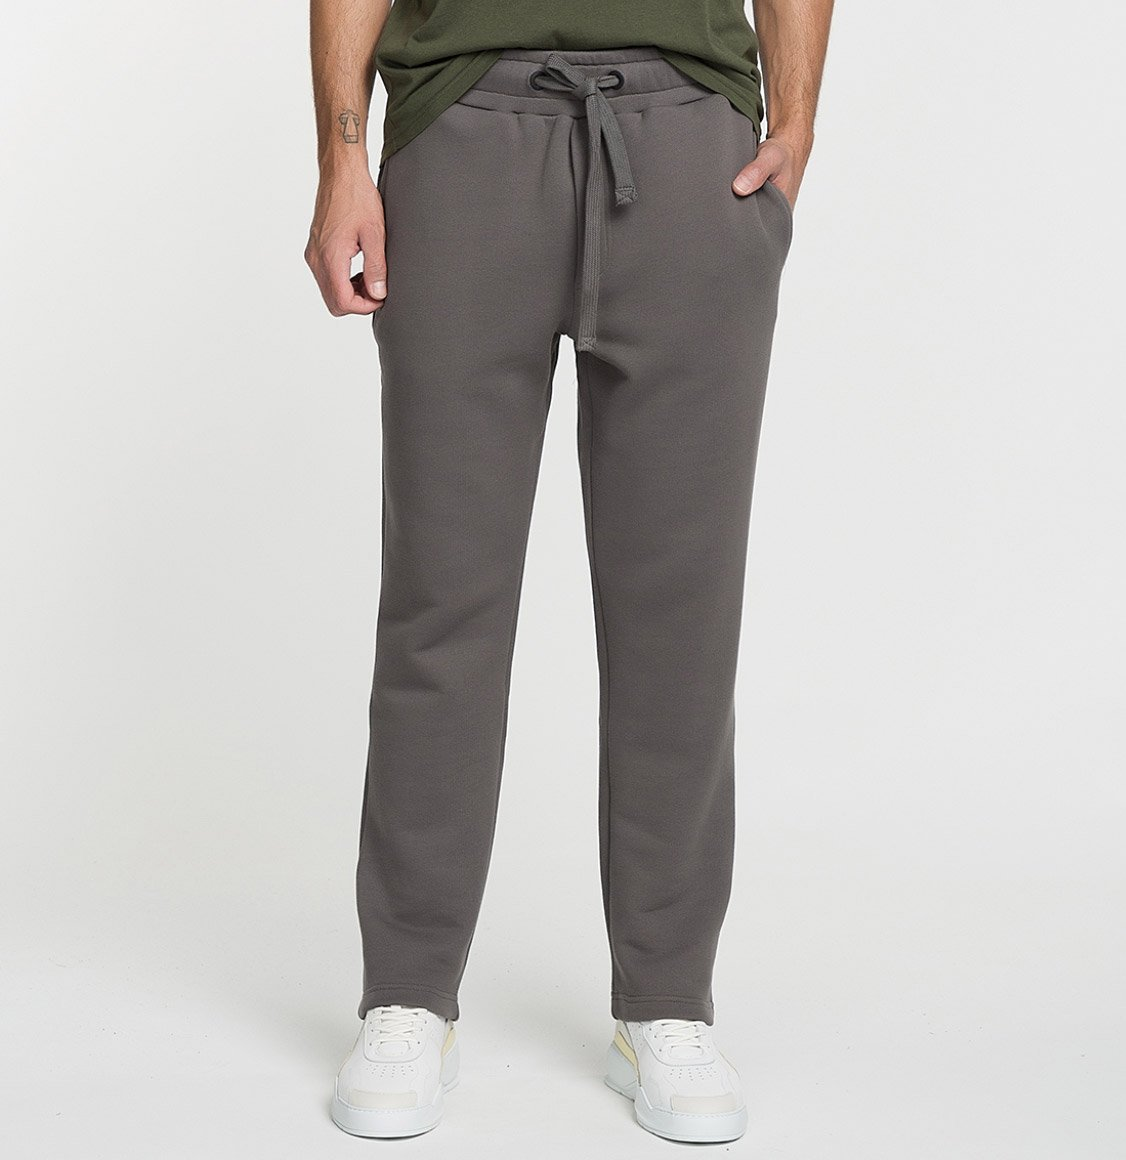 The Project Garments Loose Fit Cotton Sweatpants Moonrock Grey